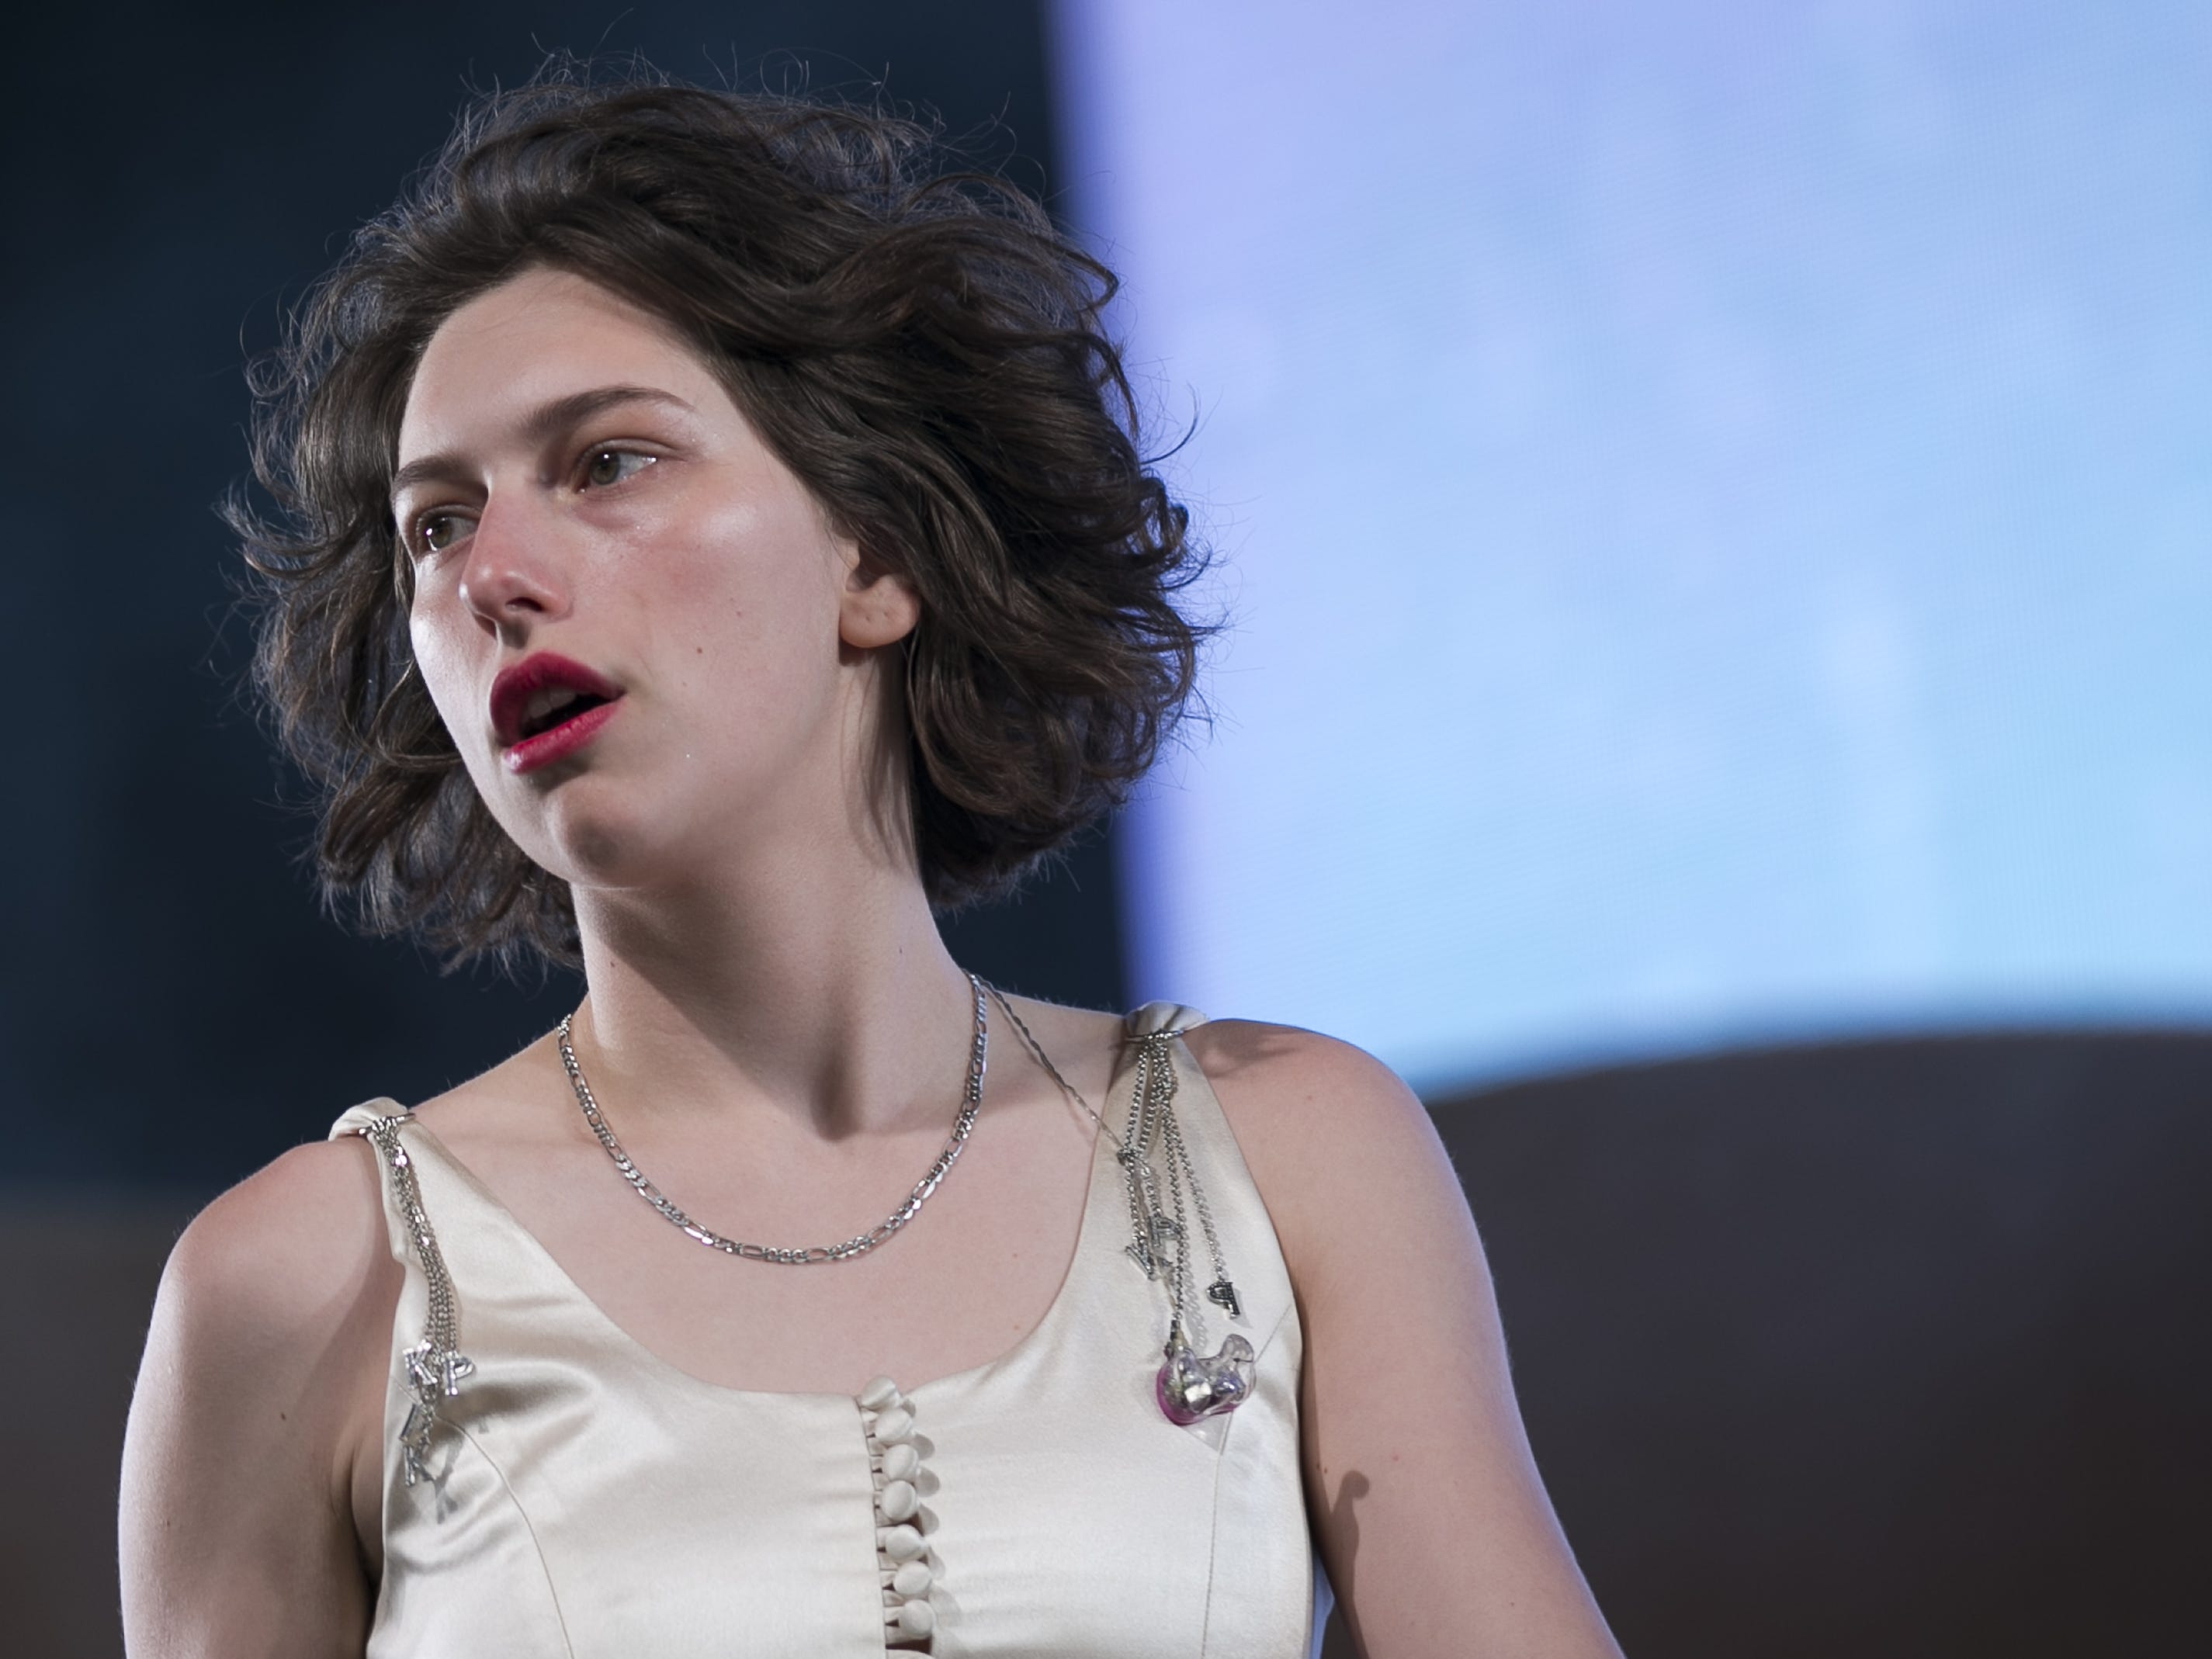 King Princess performs at the Coachella Valley Music and Arts Festival in Indio, Calif. on April 12, 2019.